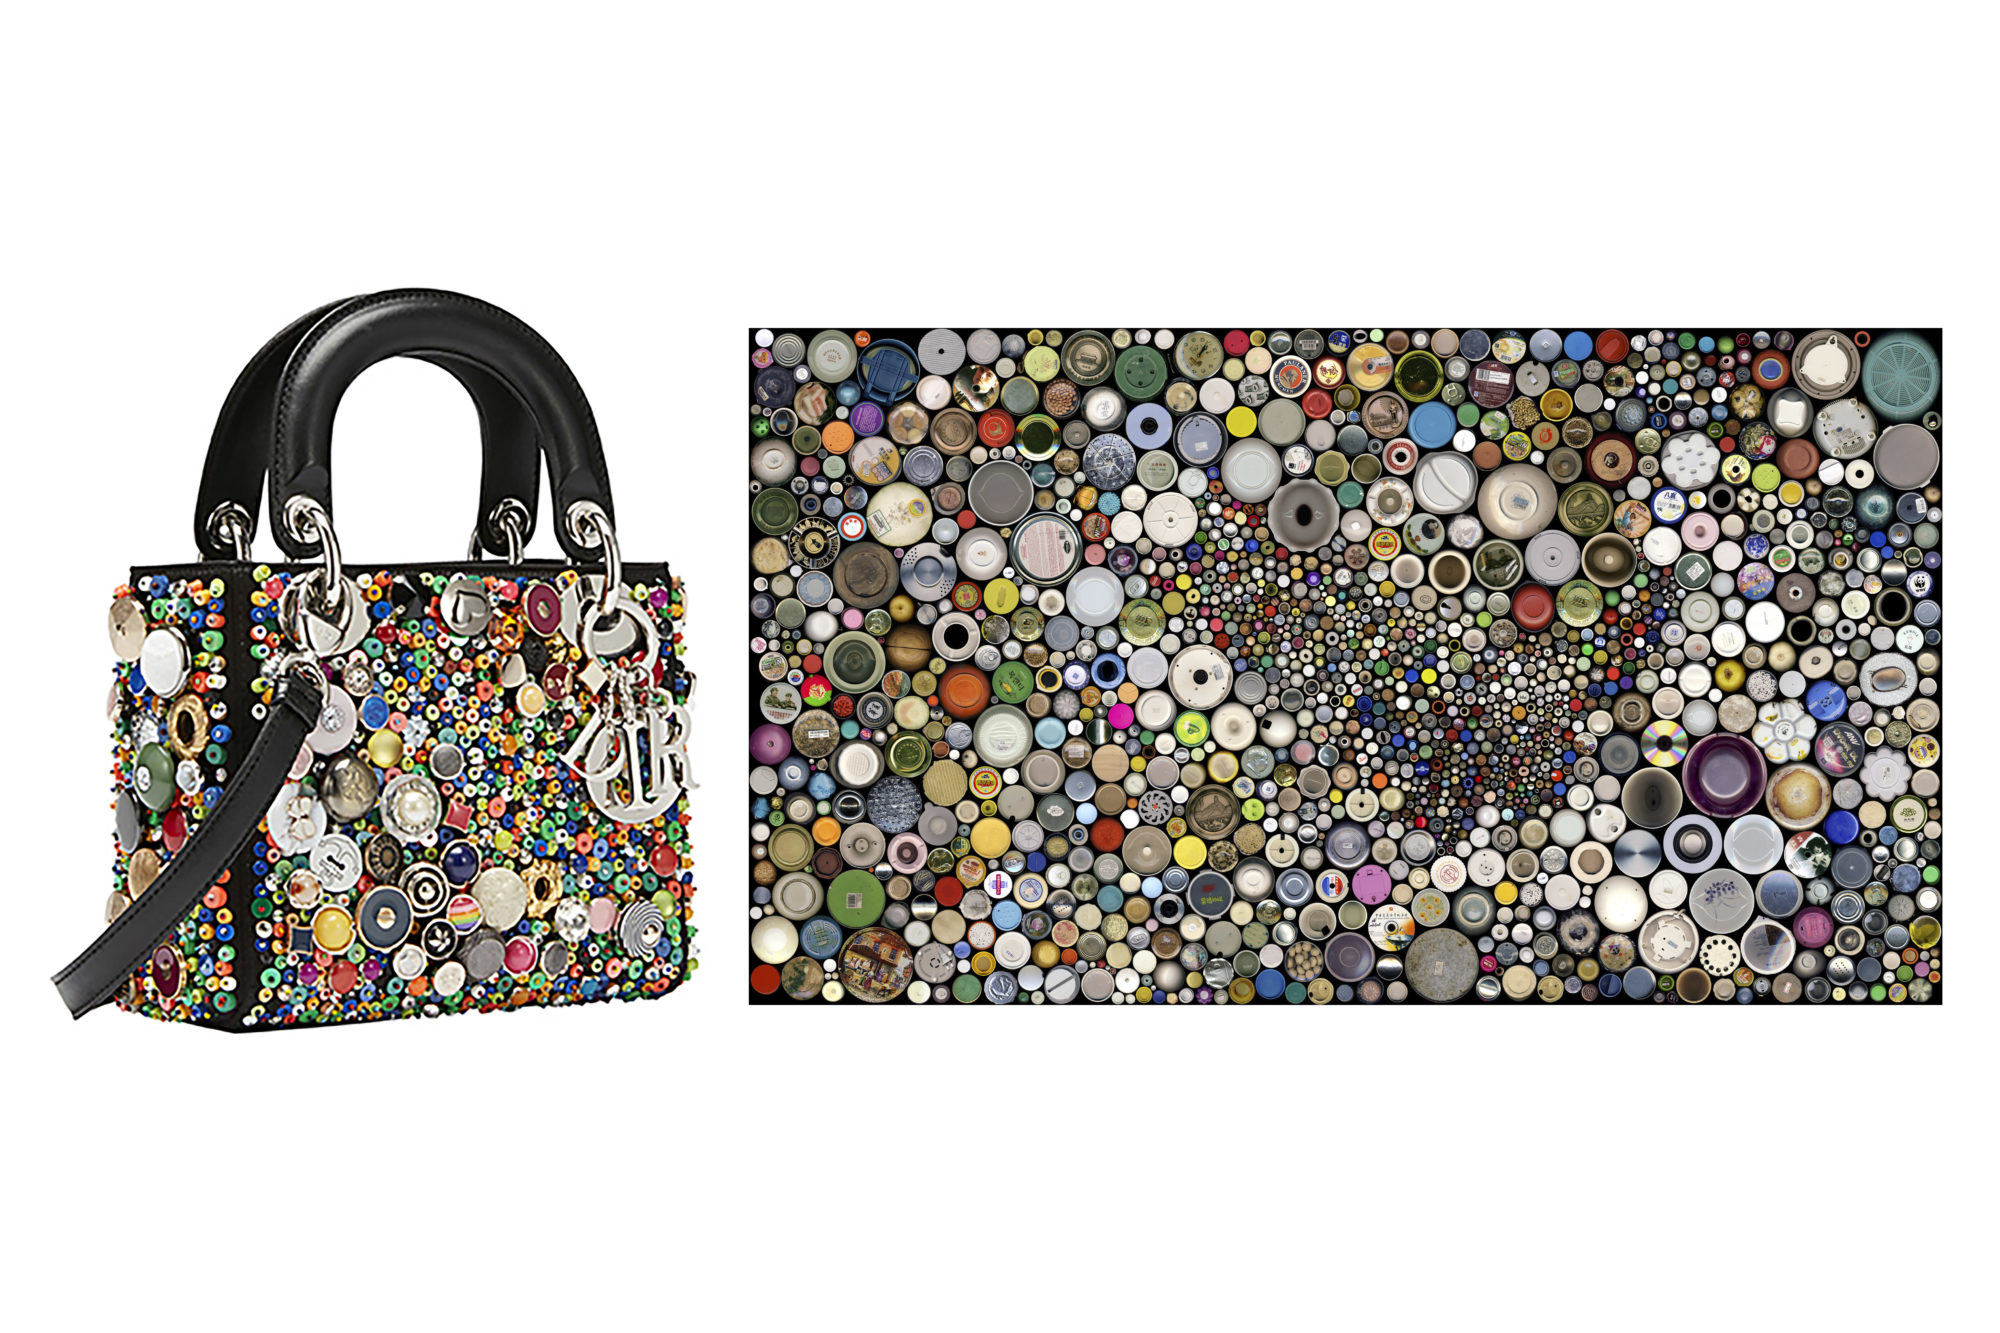 a5ebbc427a8d The Lady Dior Handbag Gets a Striking New Look - SURFACE